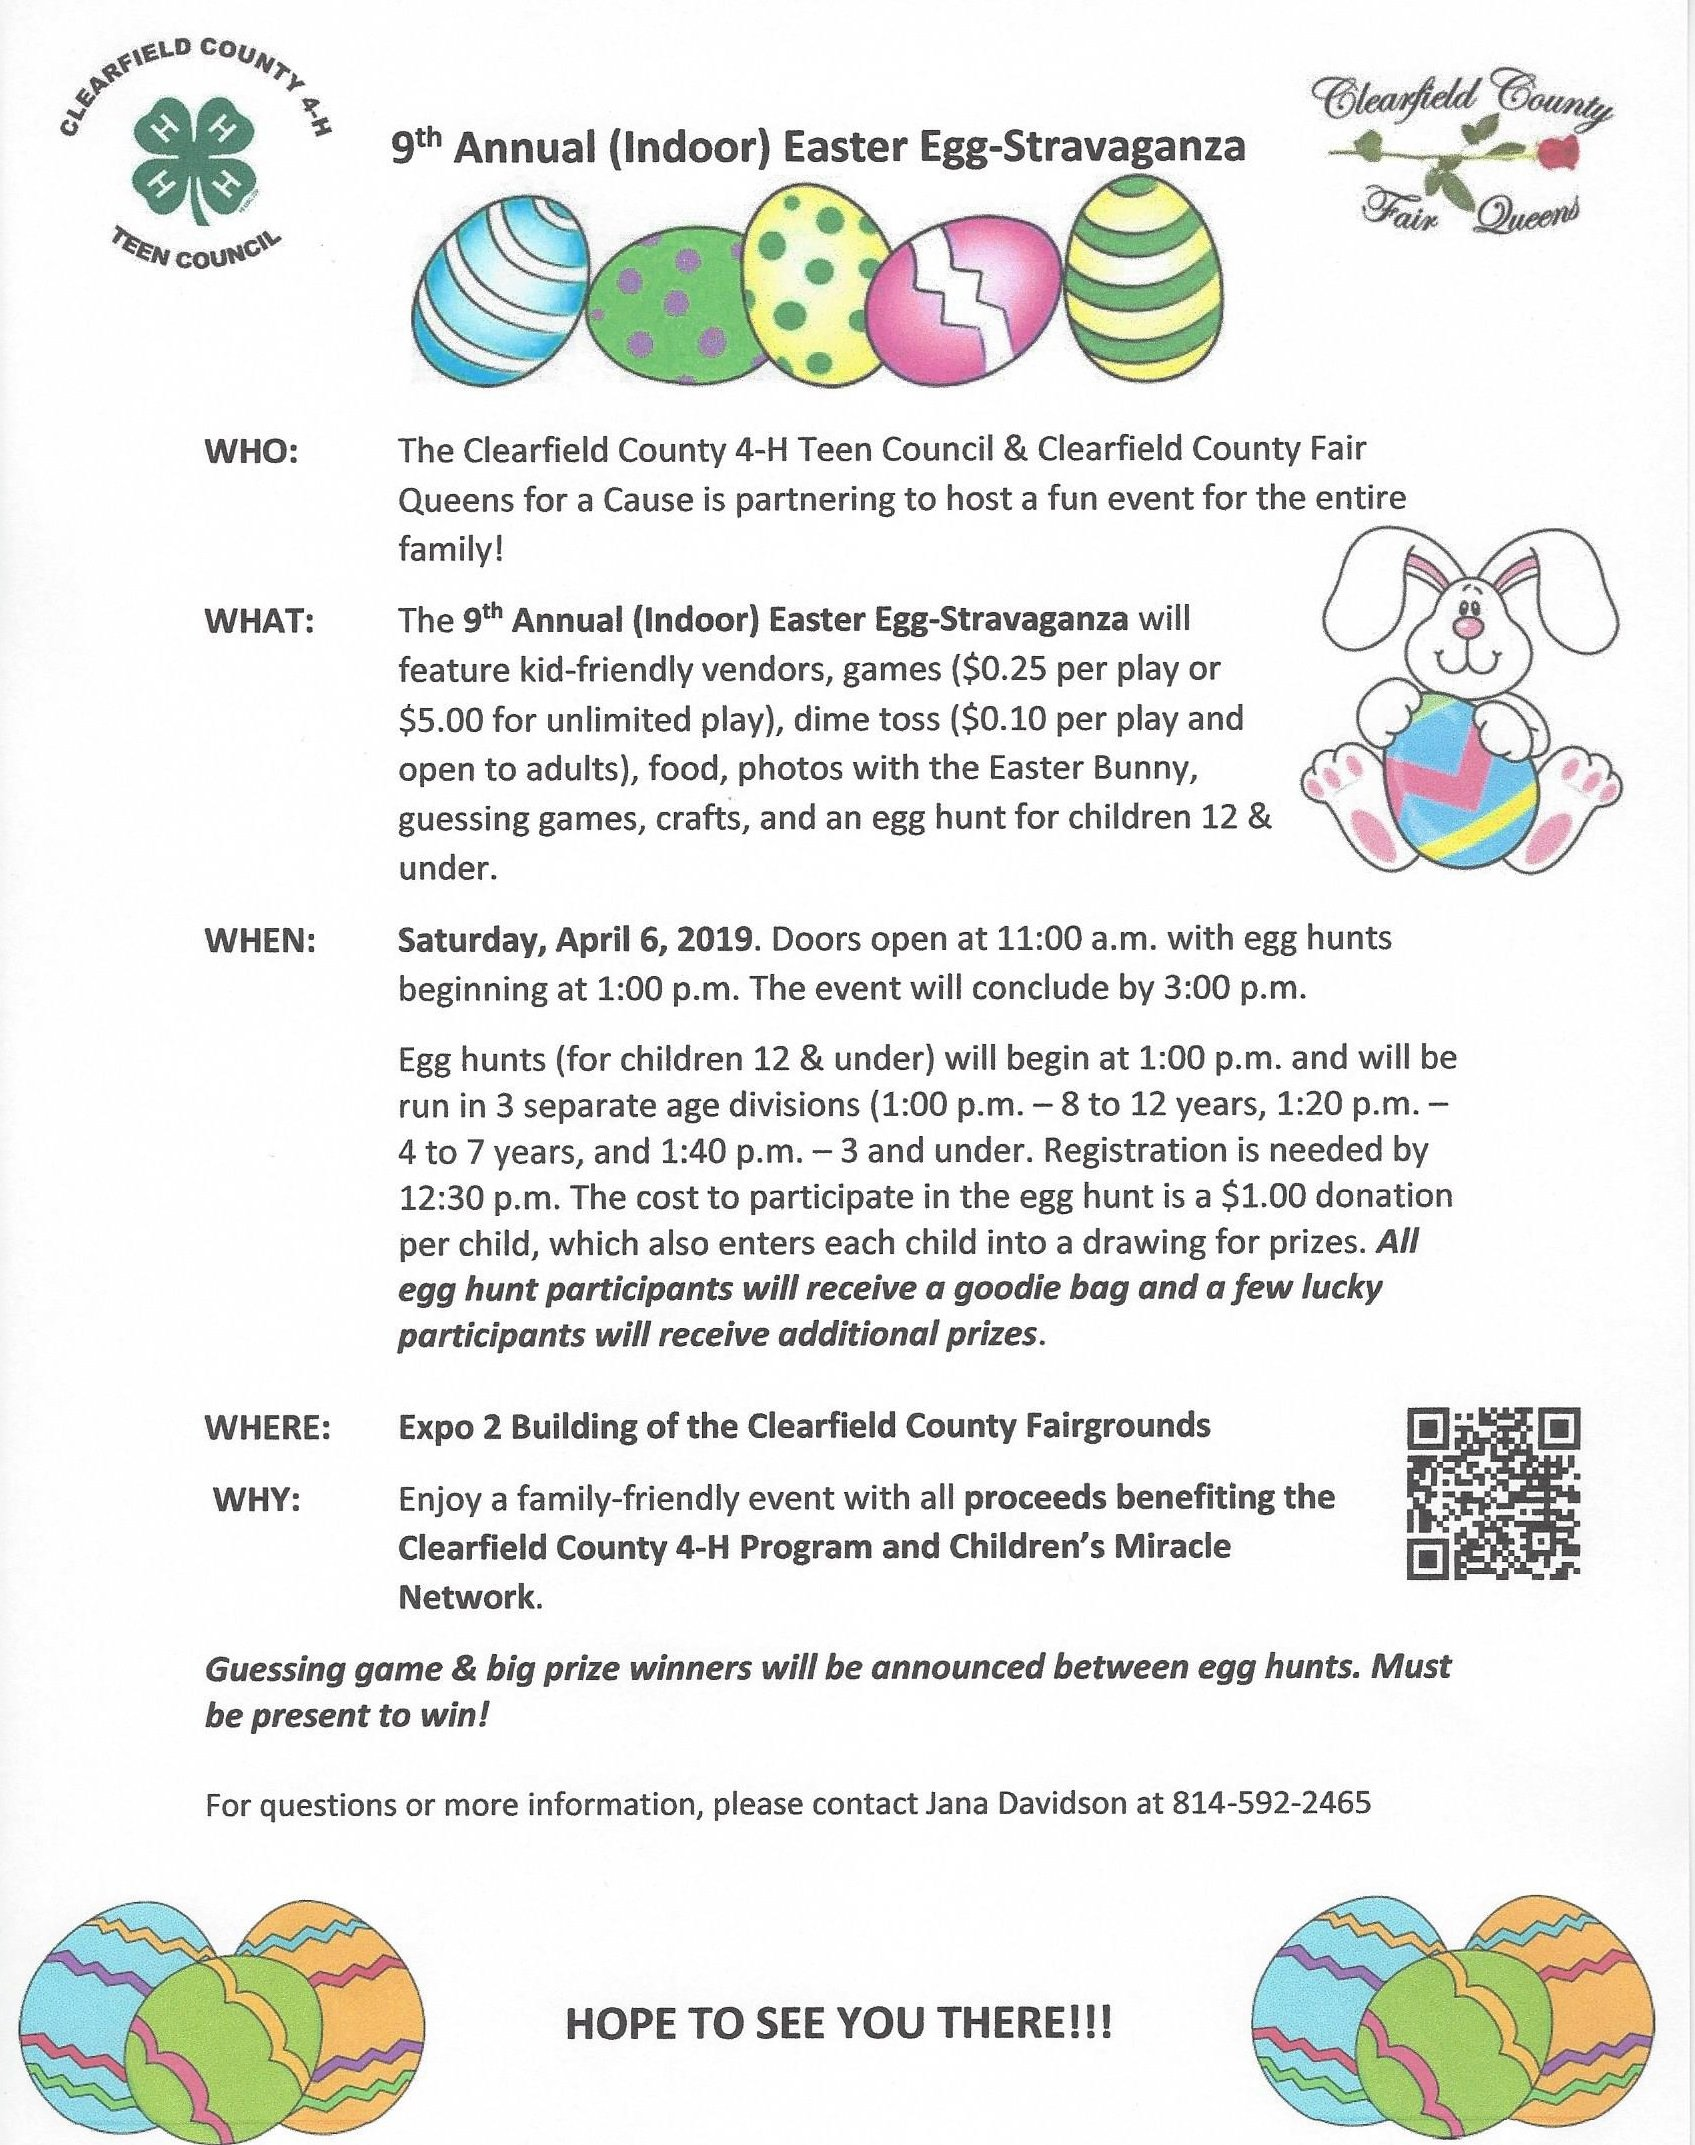 9th Annual Indoor Easter Egg-Stravaganza 4/6 - Community